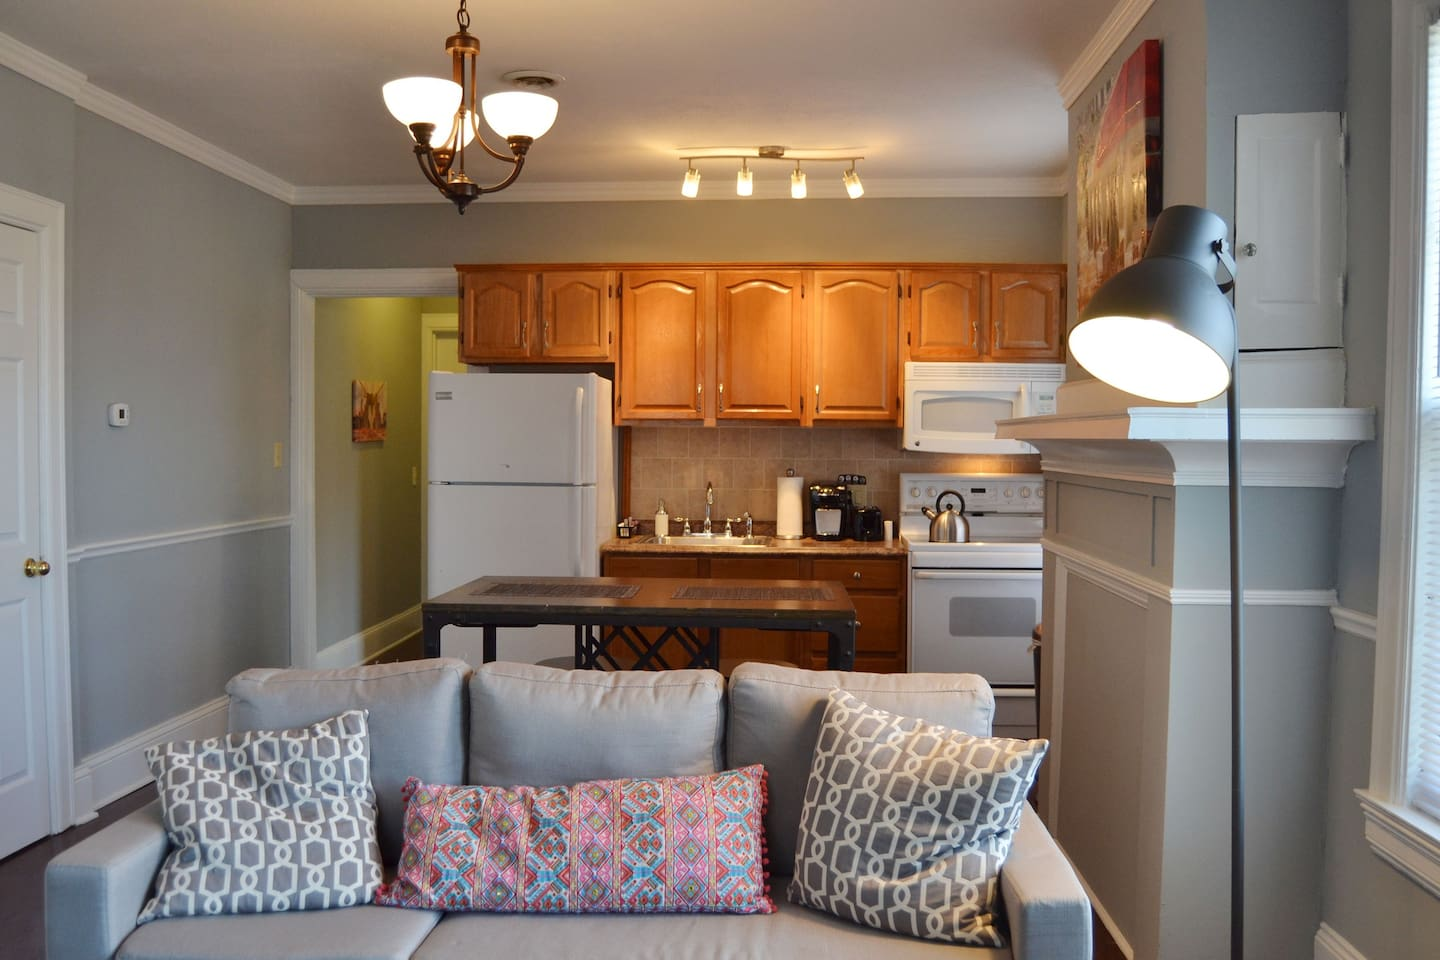 Fully furnished, private apartment great for work trip or a visit in Elmira.